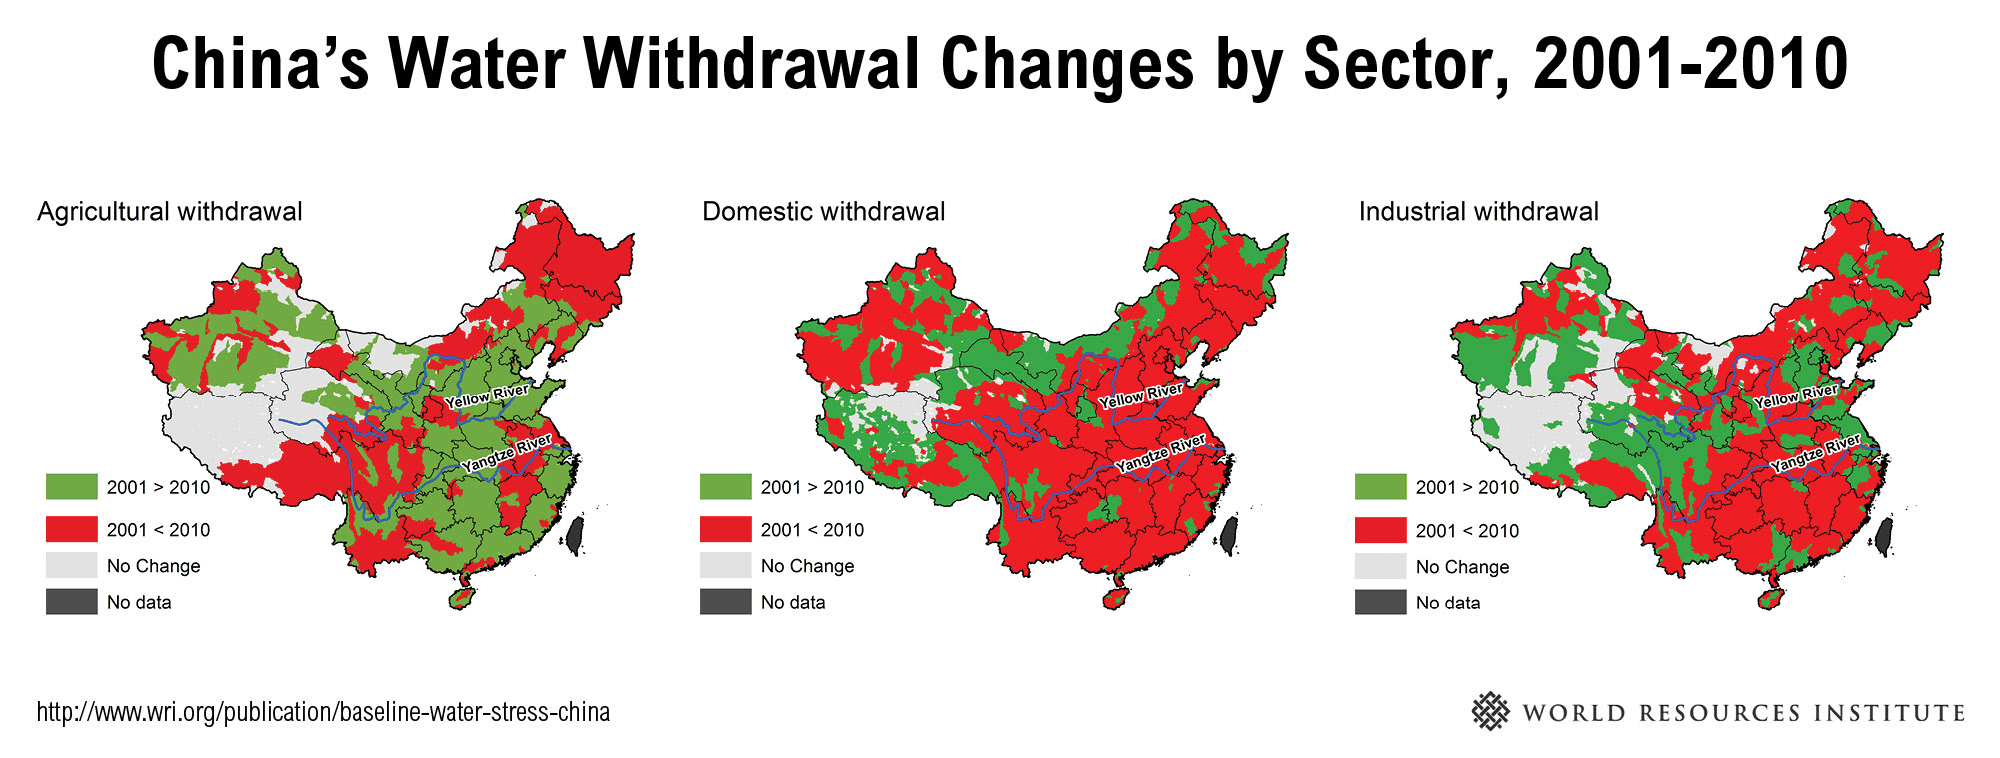 China's Water Withdrawal Changes by Sector